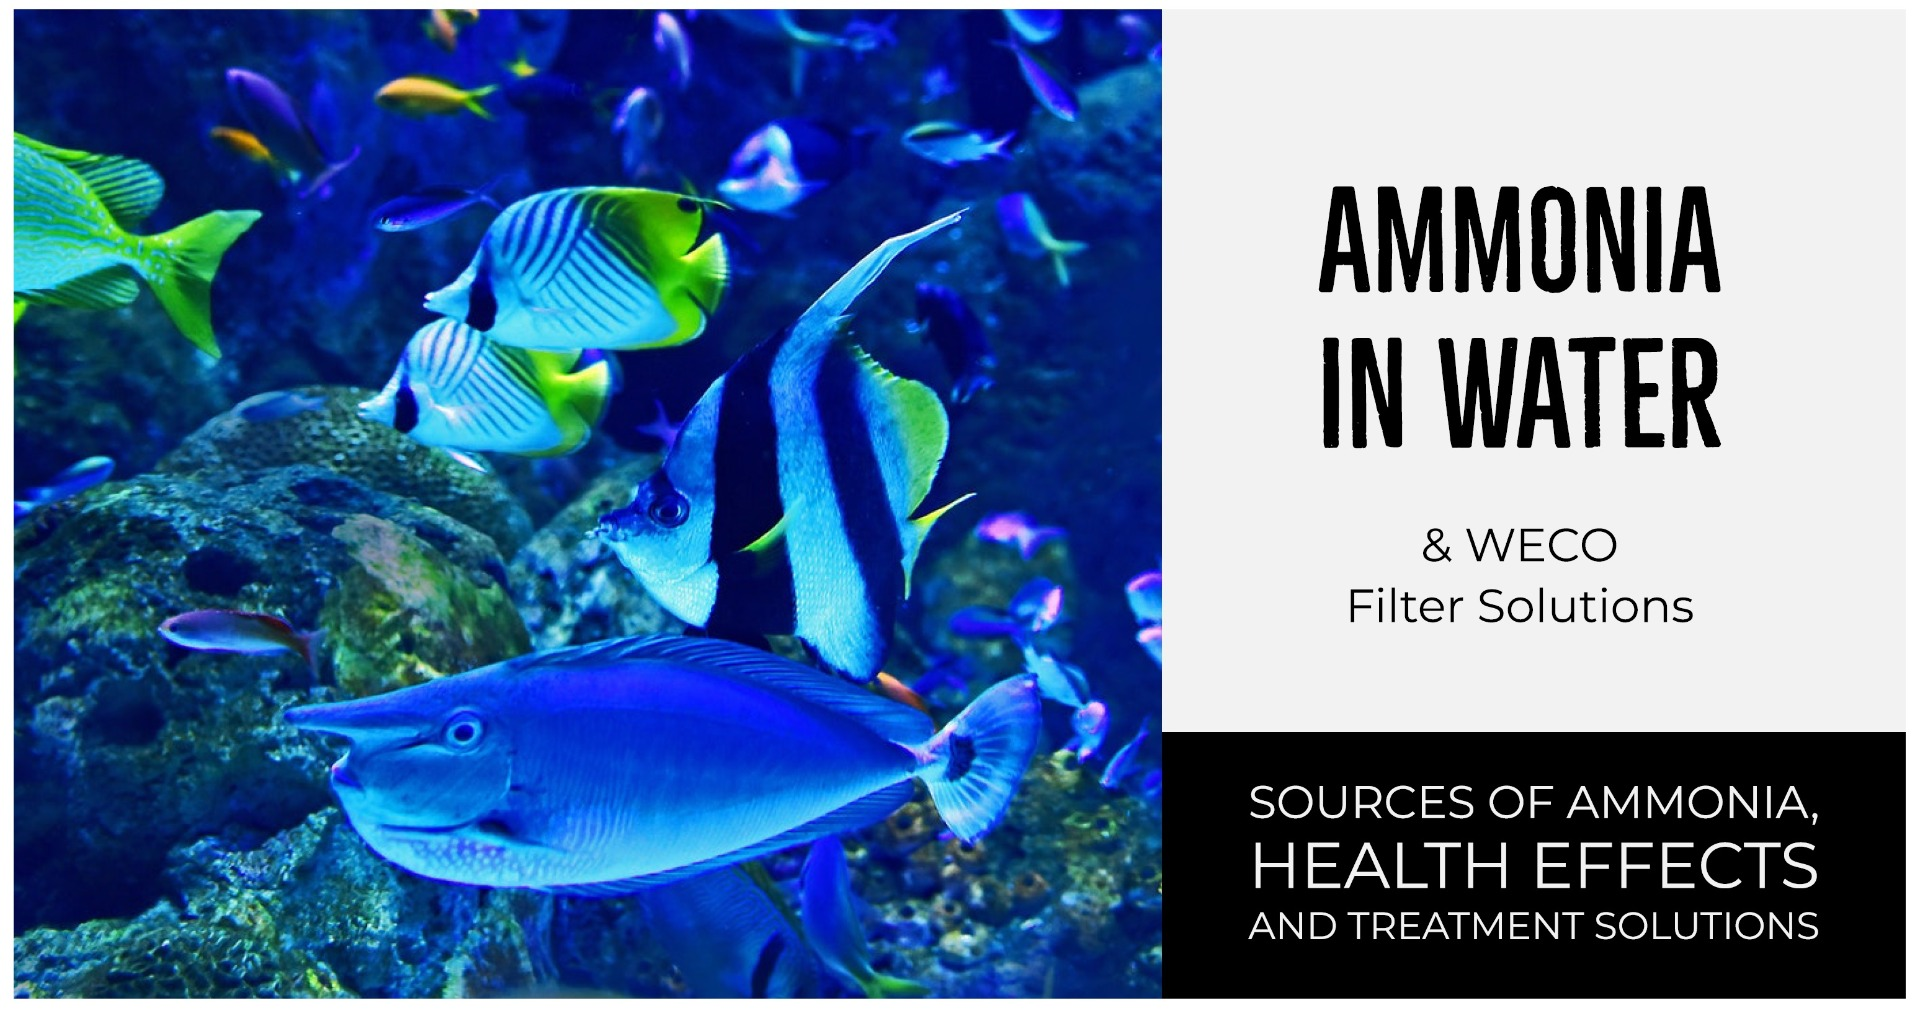 Ammonia is toxic to fish and aquatic wildlife